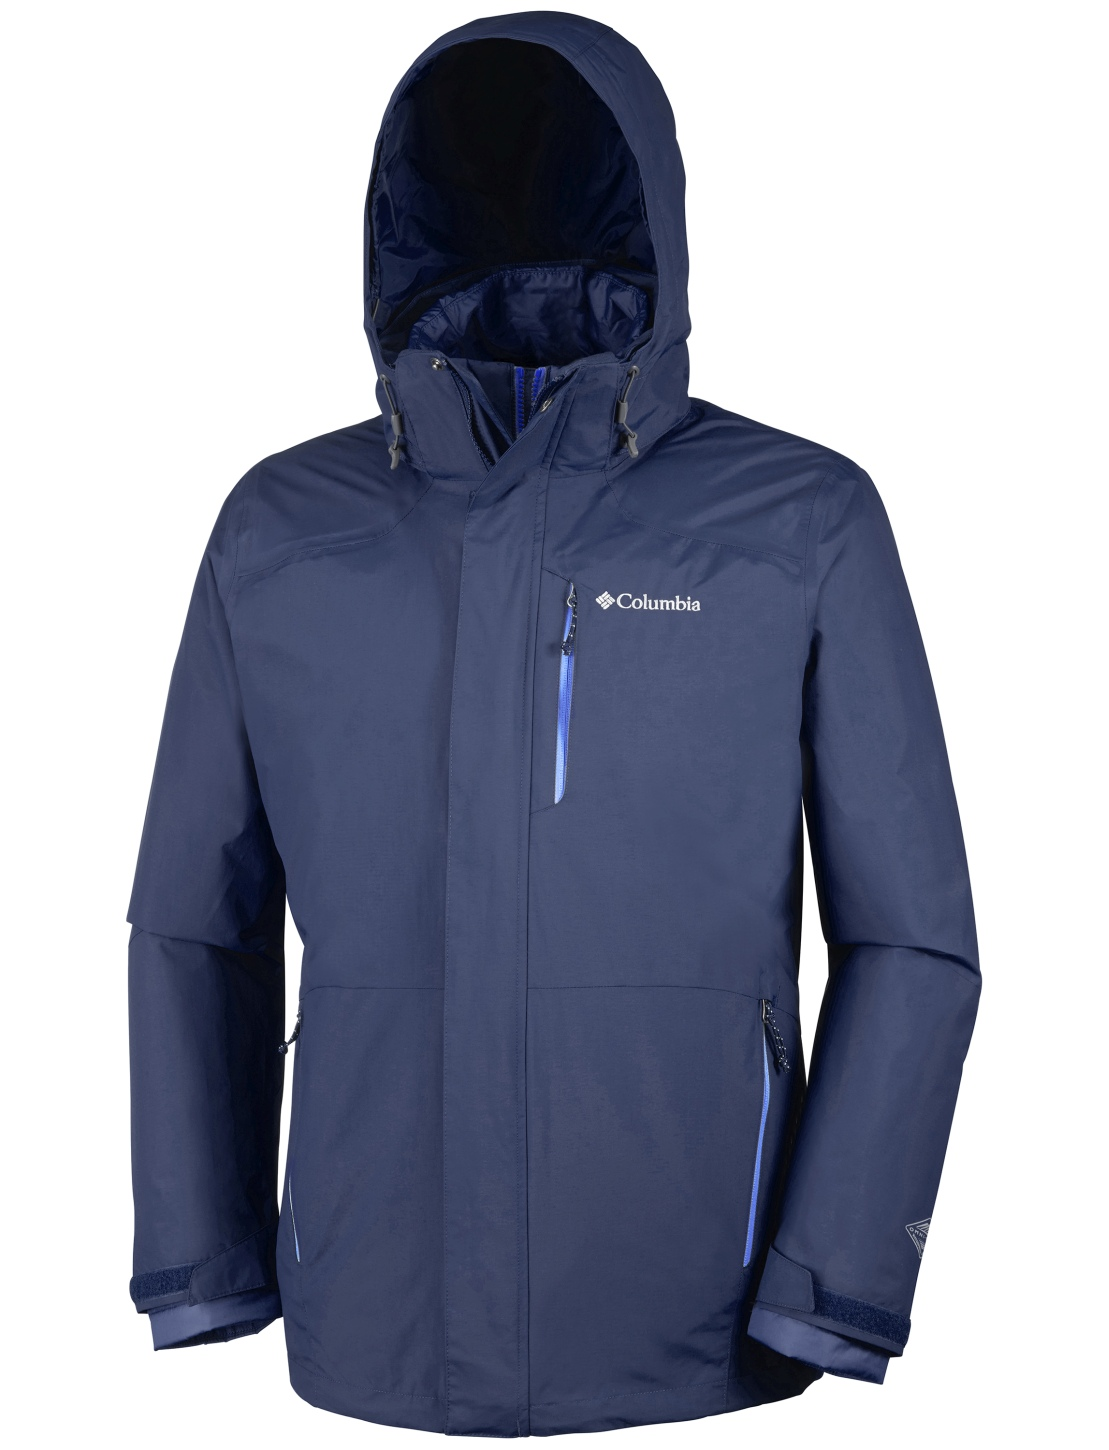 Columbia Variable Ski-Jacke Element Blocker für Männer Collegiate Navy-30